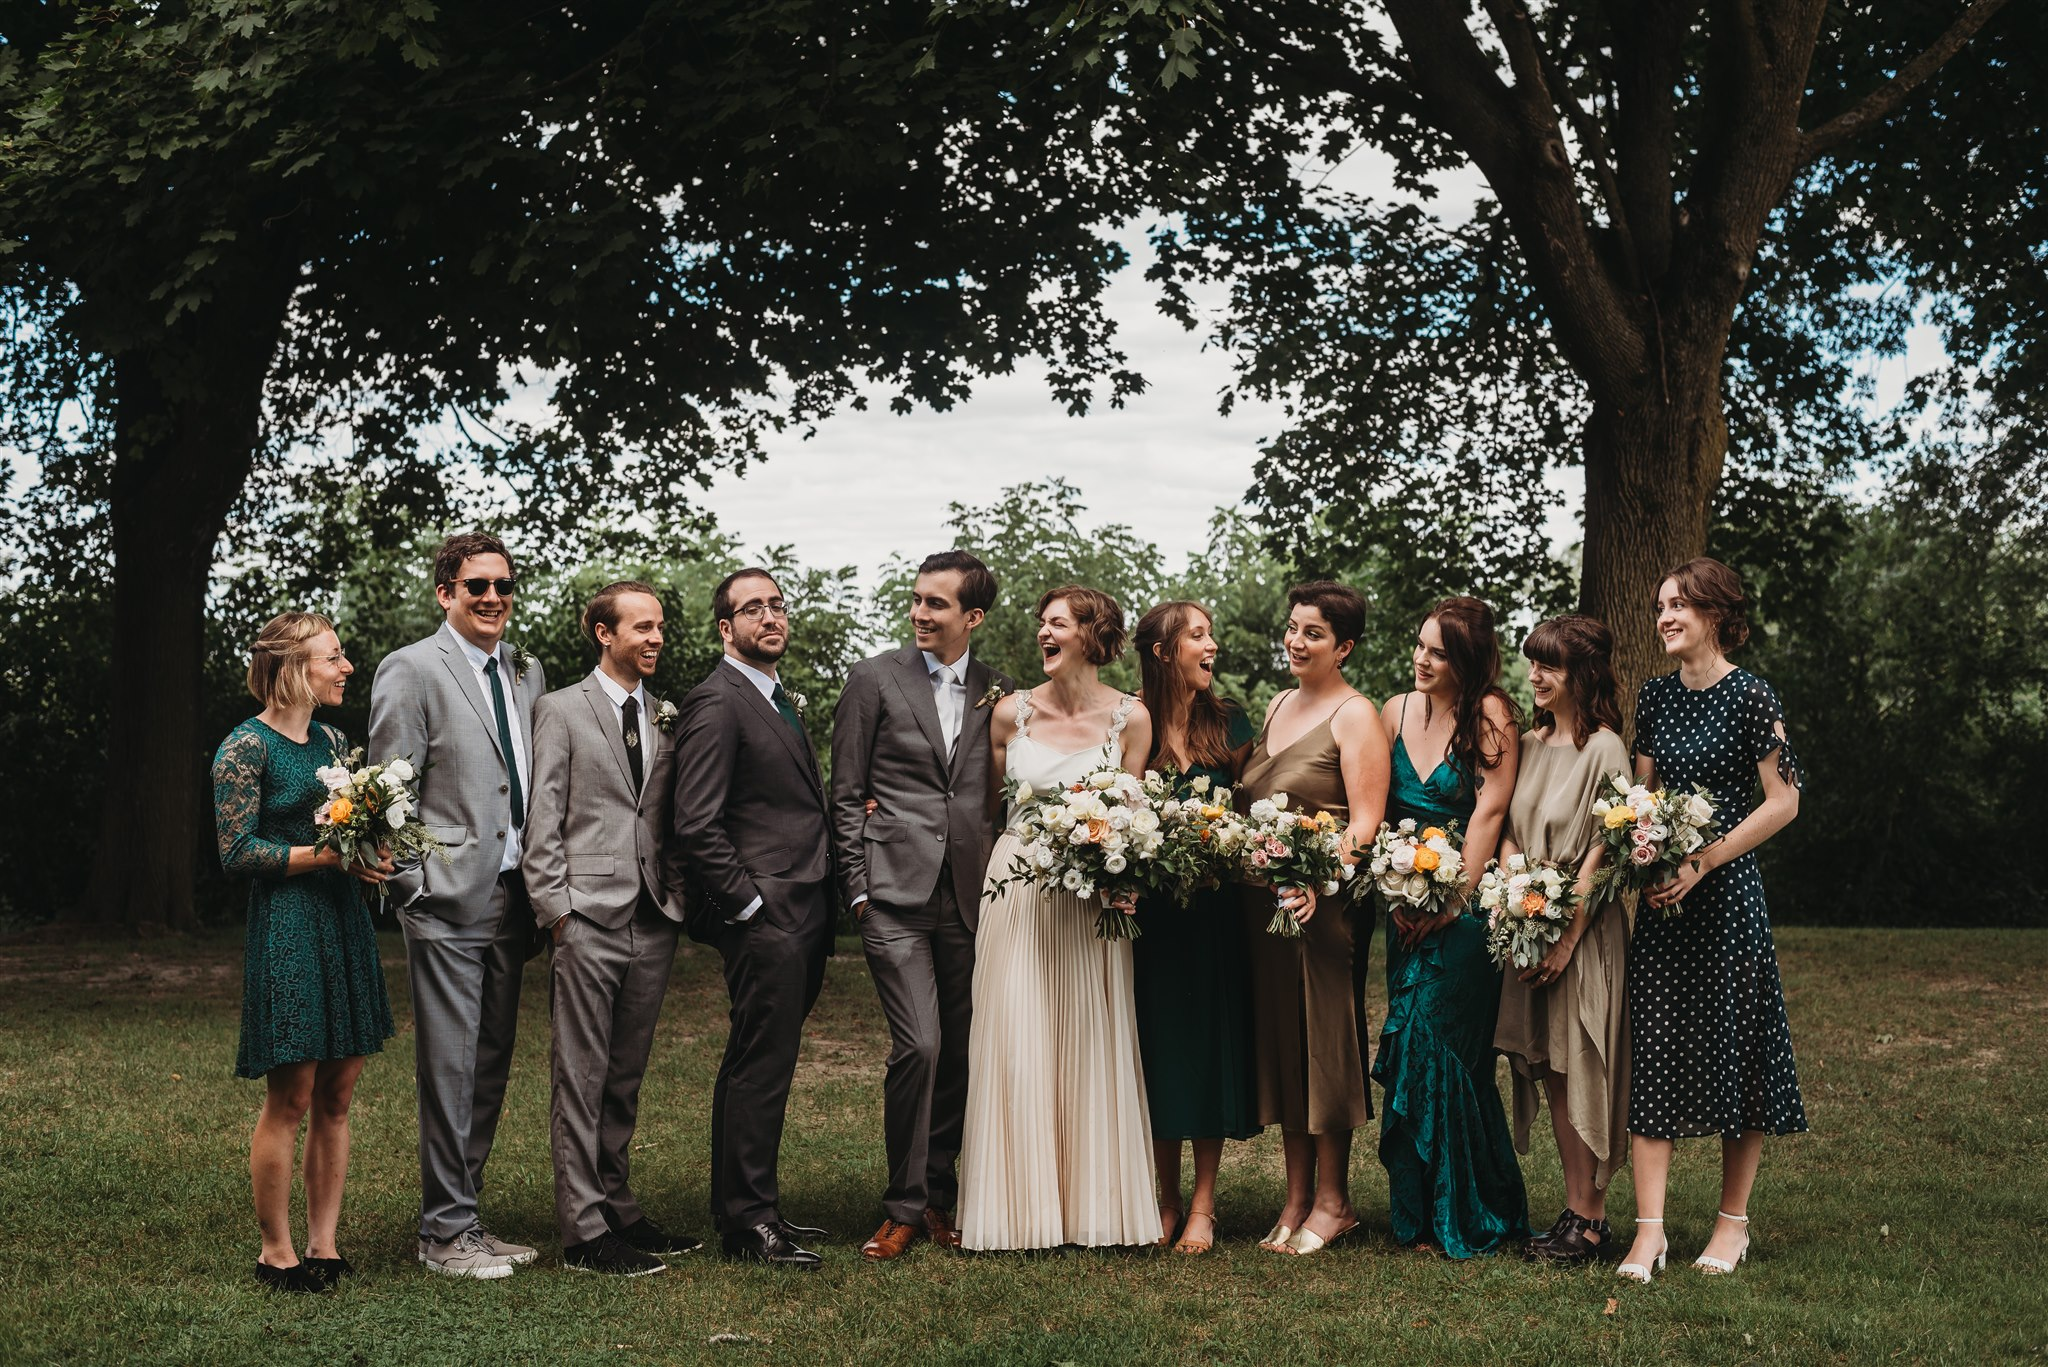 Fanshawe Conservation Area wedding photos with wedding party in relaxed pose